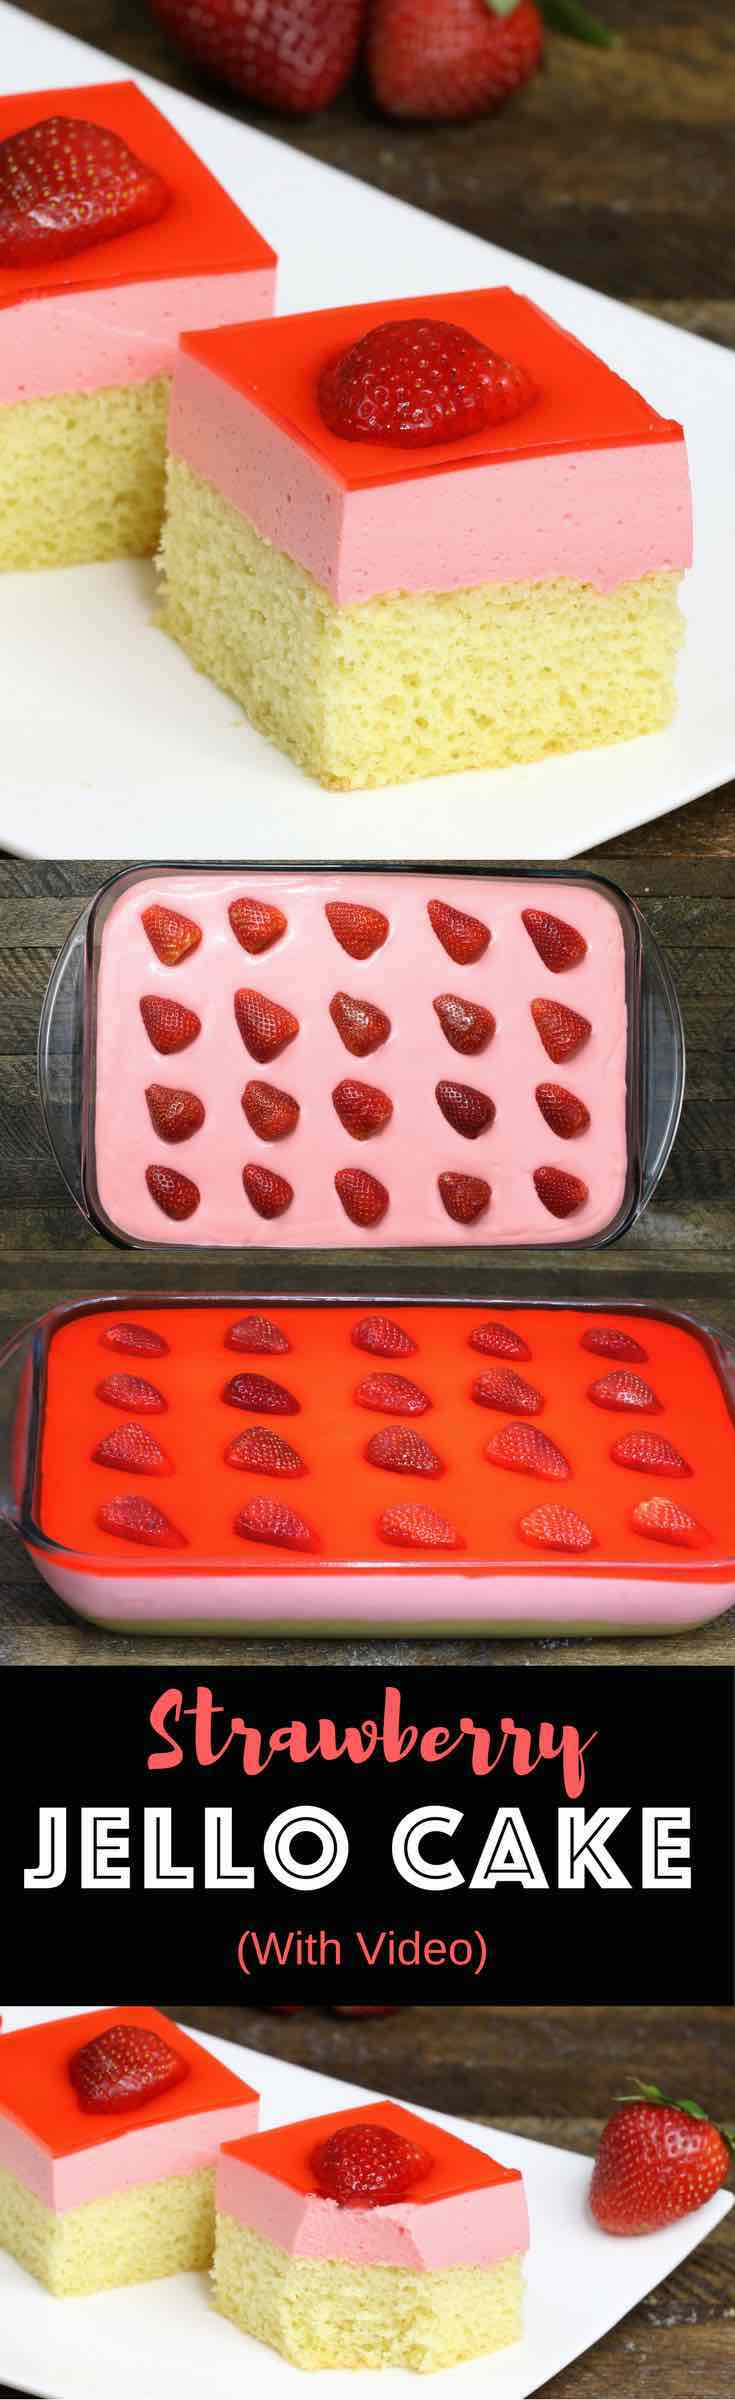 Strawberry jello cake is a delicious dessert. All you need is a few simple ingredients: yellow cake, strawberry jello, whipped topping and strawberries. An easy recipe that makes an incredible dessert for parties, birthday parties, Mother's Day and Easter. Video recipe. | Tipbuzz.com